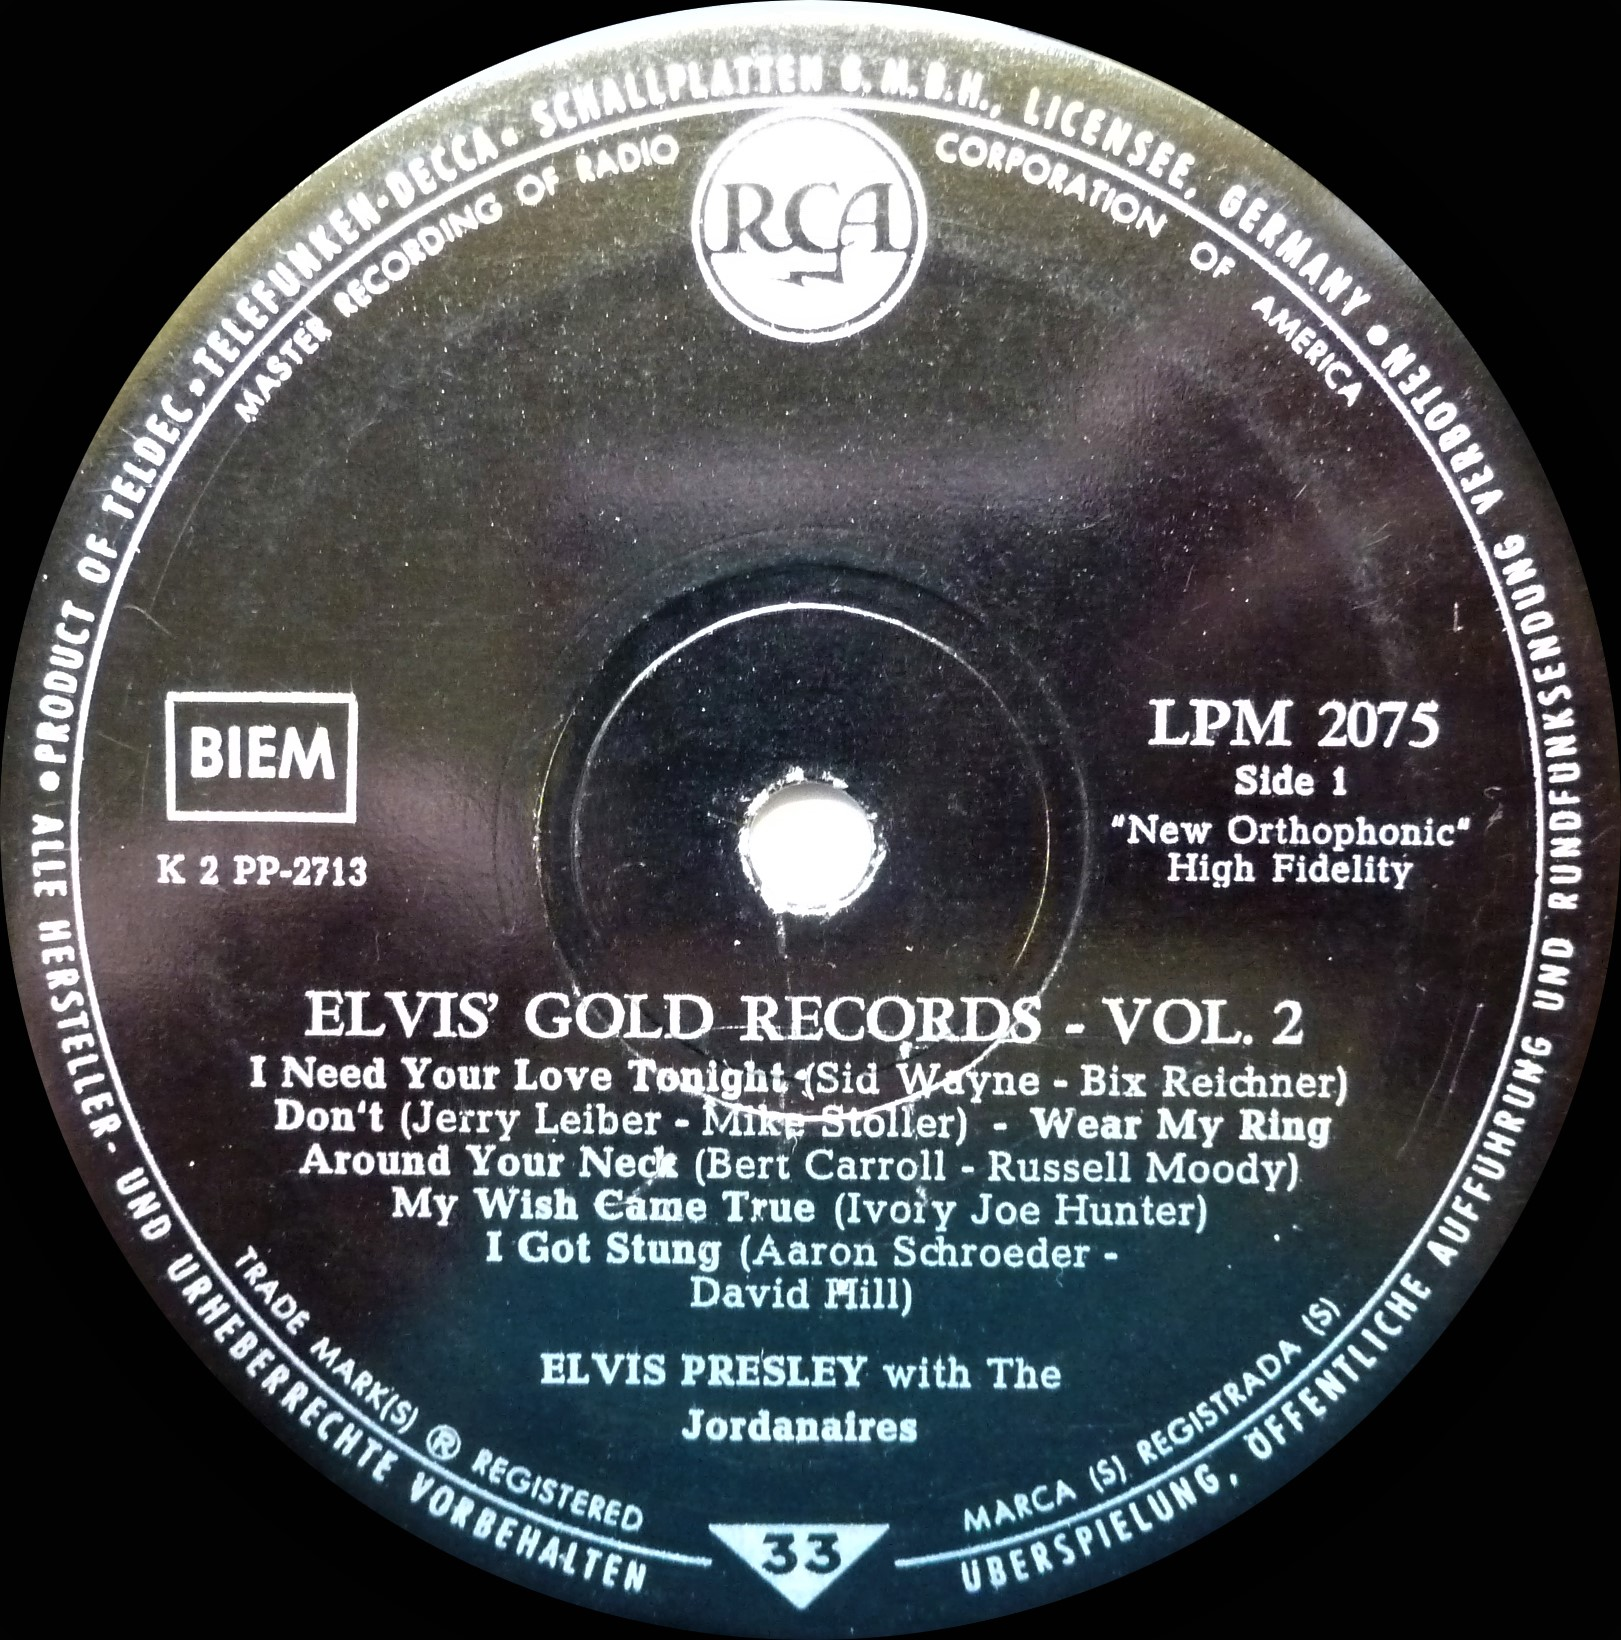 ELVIS' GOLD RECORDS VOL. 2 - 50.000.000 ELVIS FANS CAN´T BE WRONG Goldrecordsvol.21959su7um7